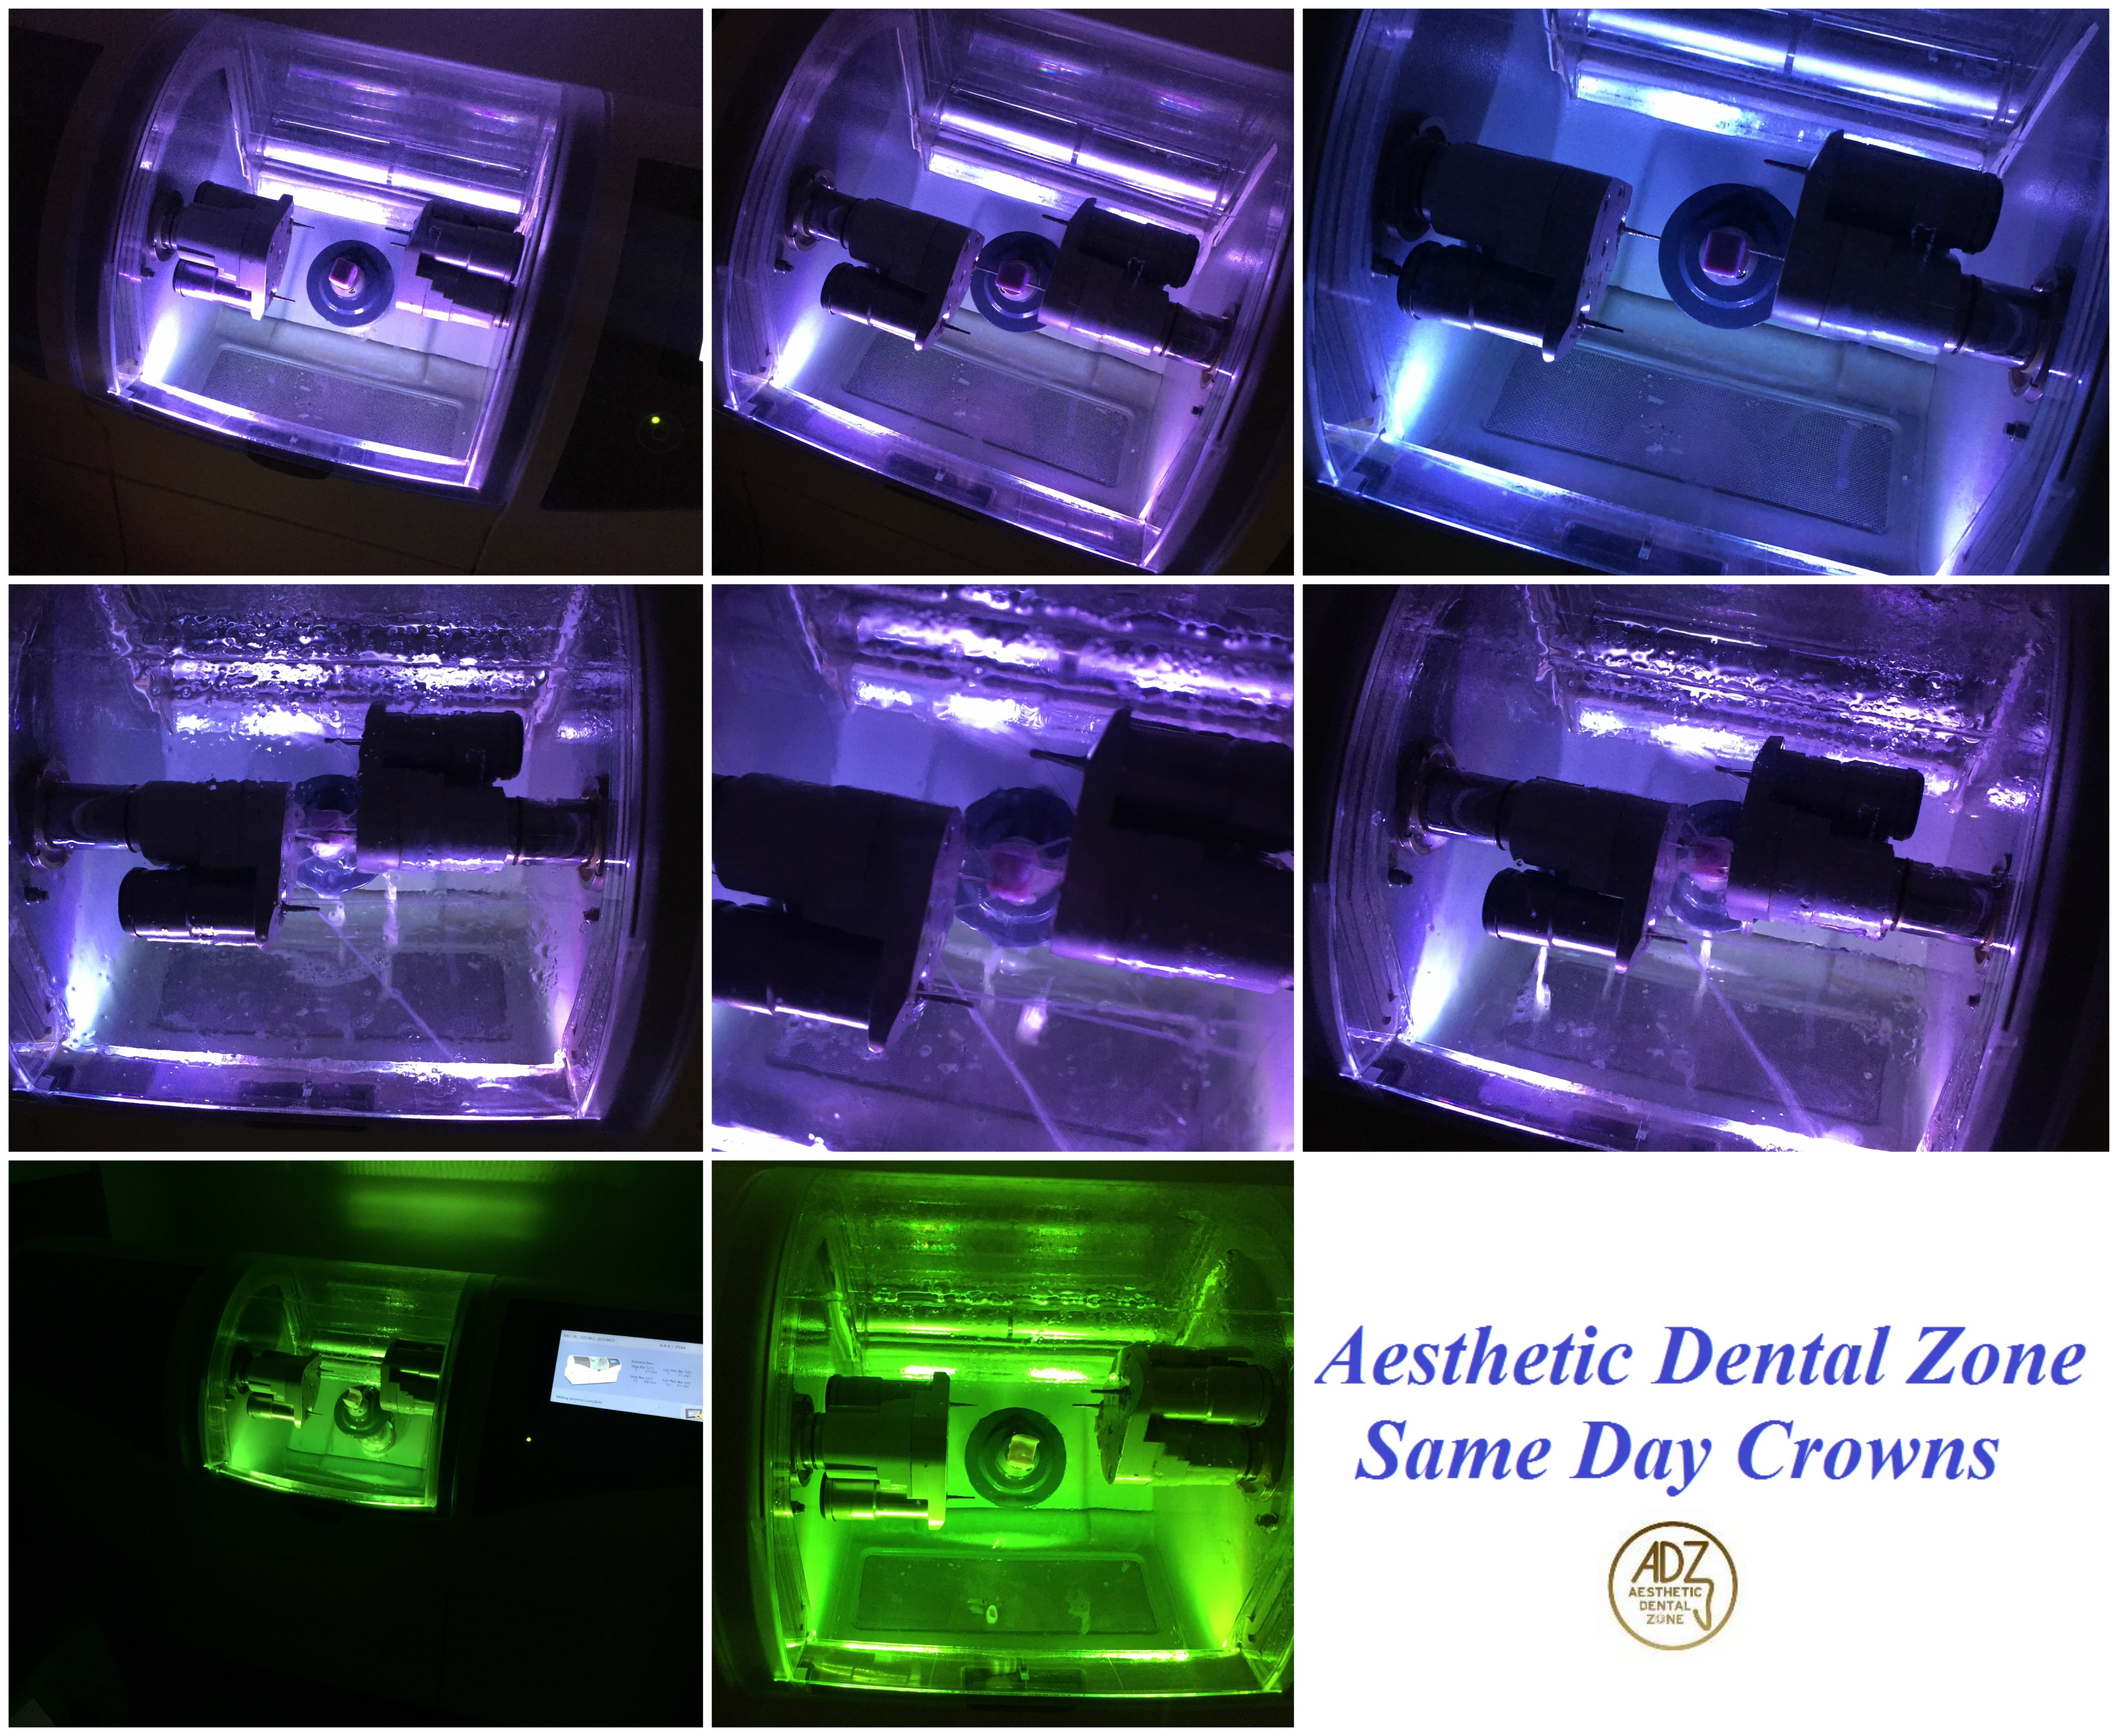 Aesthetic Dental Zone Same Day Crowns